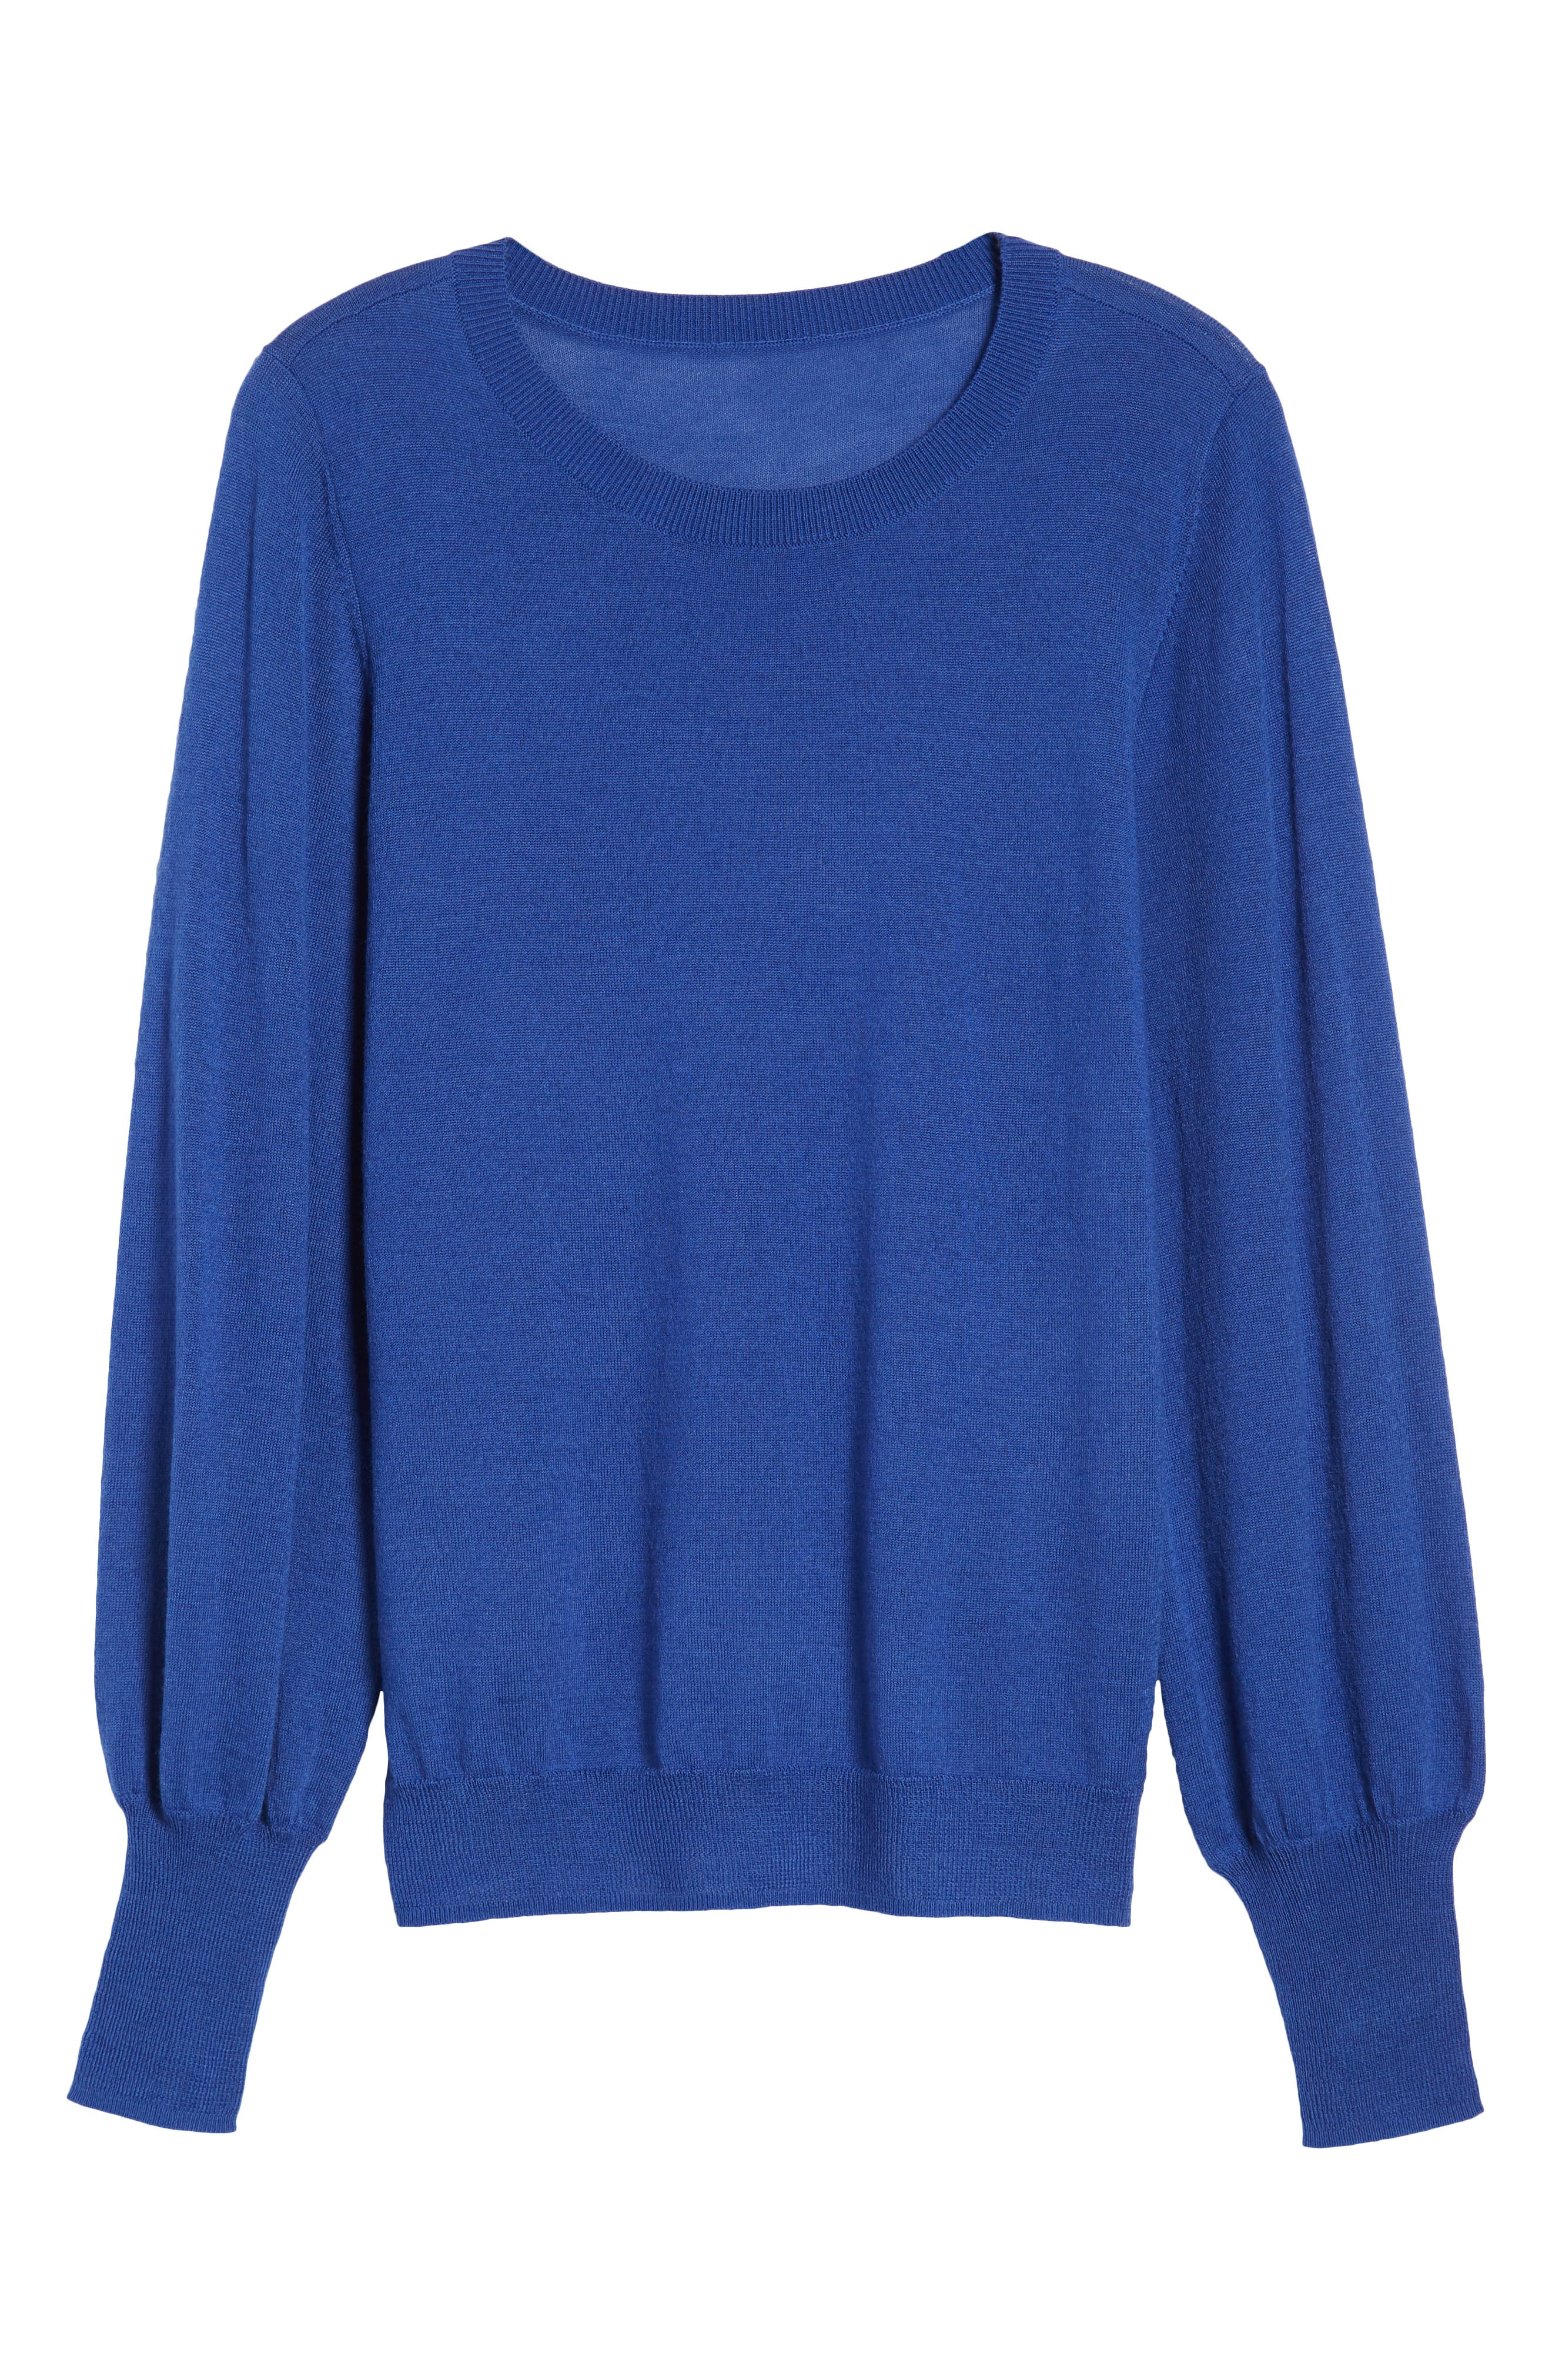 Puff Sleeve Sweater,                             Alternate thumbnail 55, color,